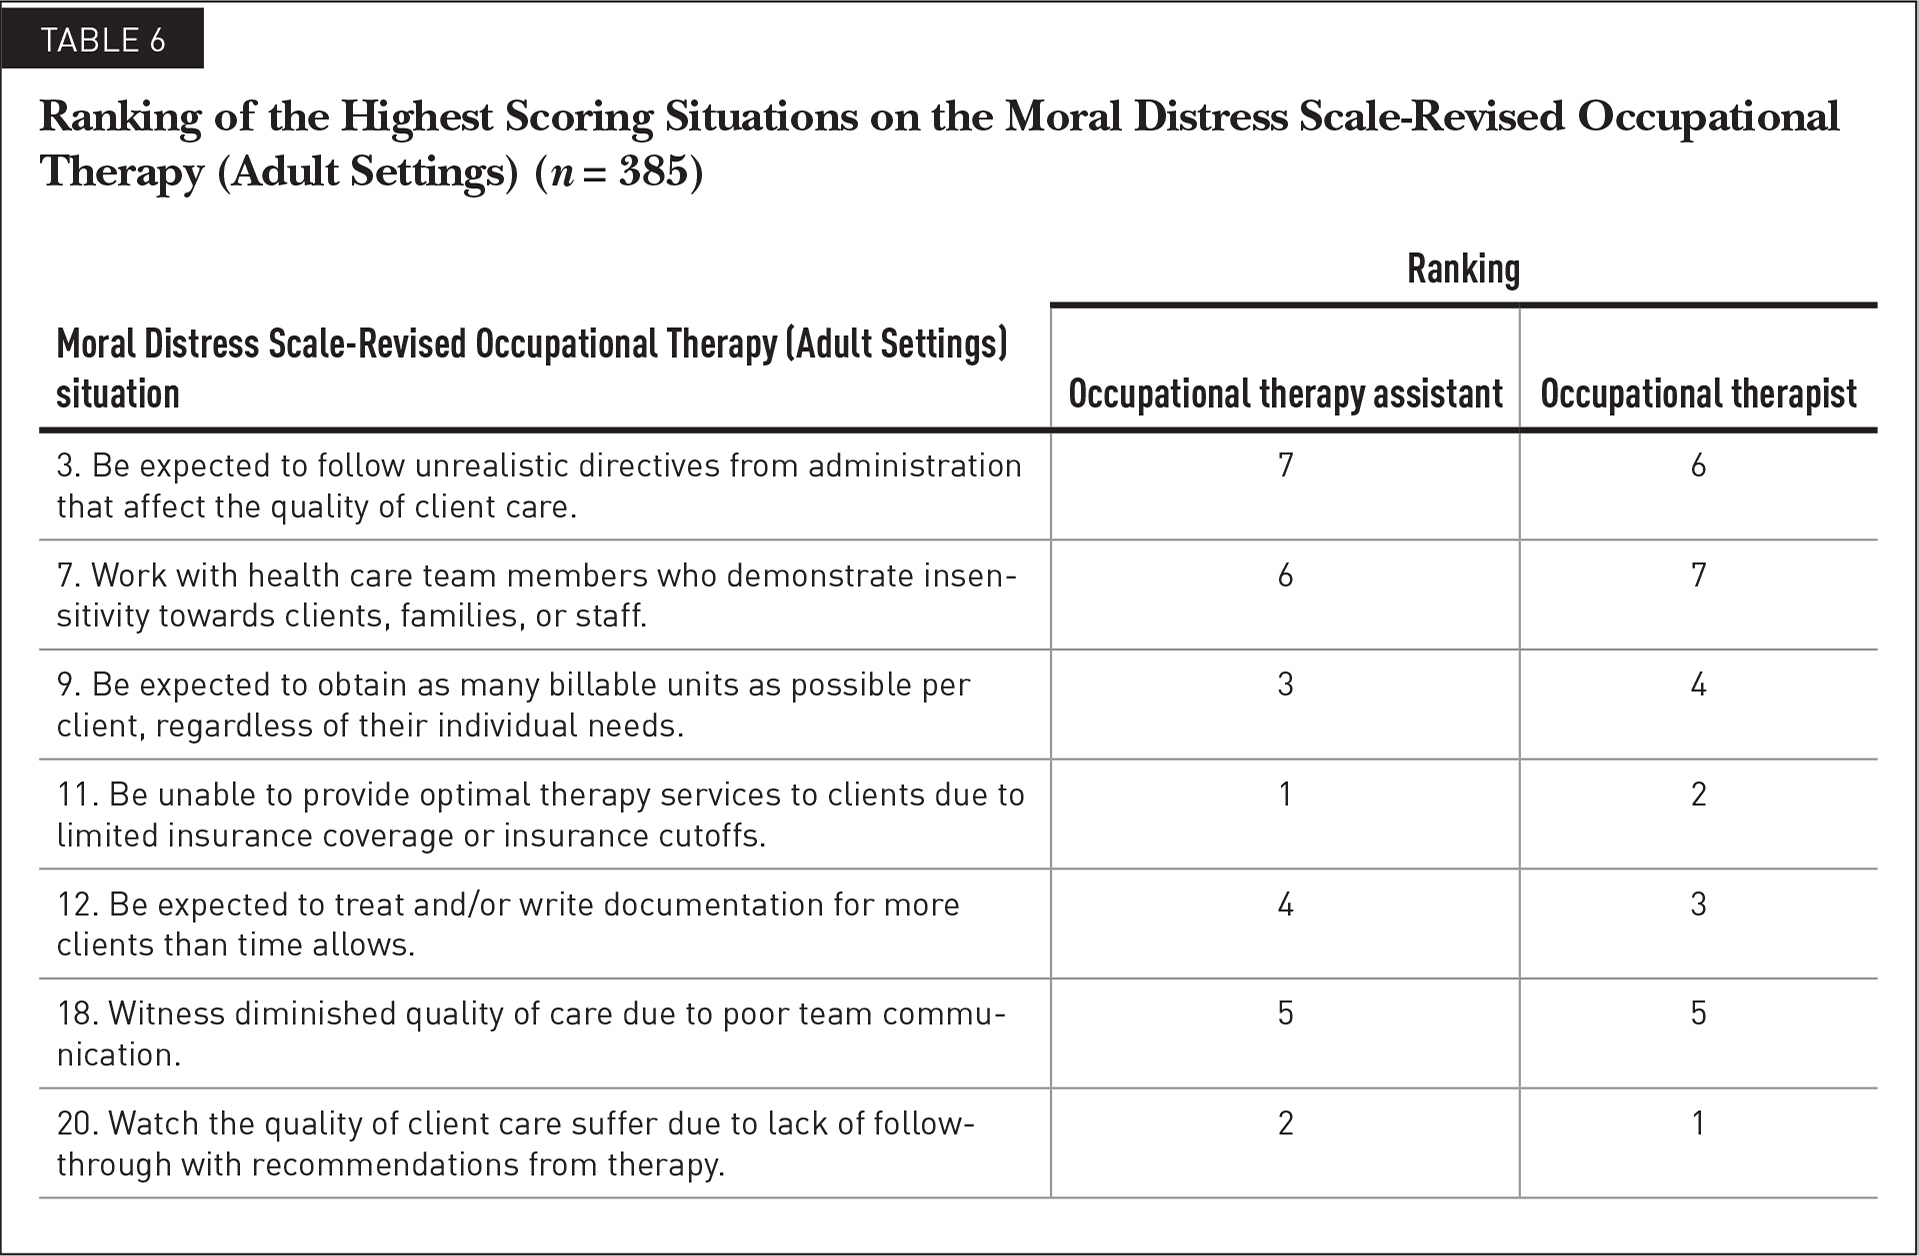 Ranking of the Highest Scoring Situations on the Moral Distress Scale-Revised Occupational Therapy (Adult Settings) (n = 385)